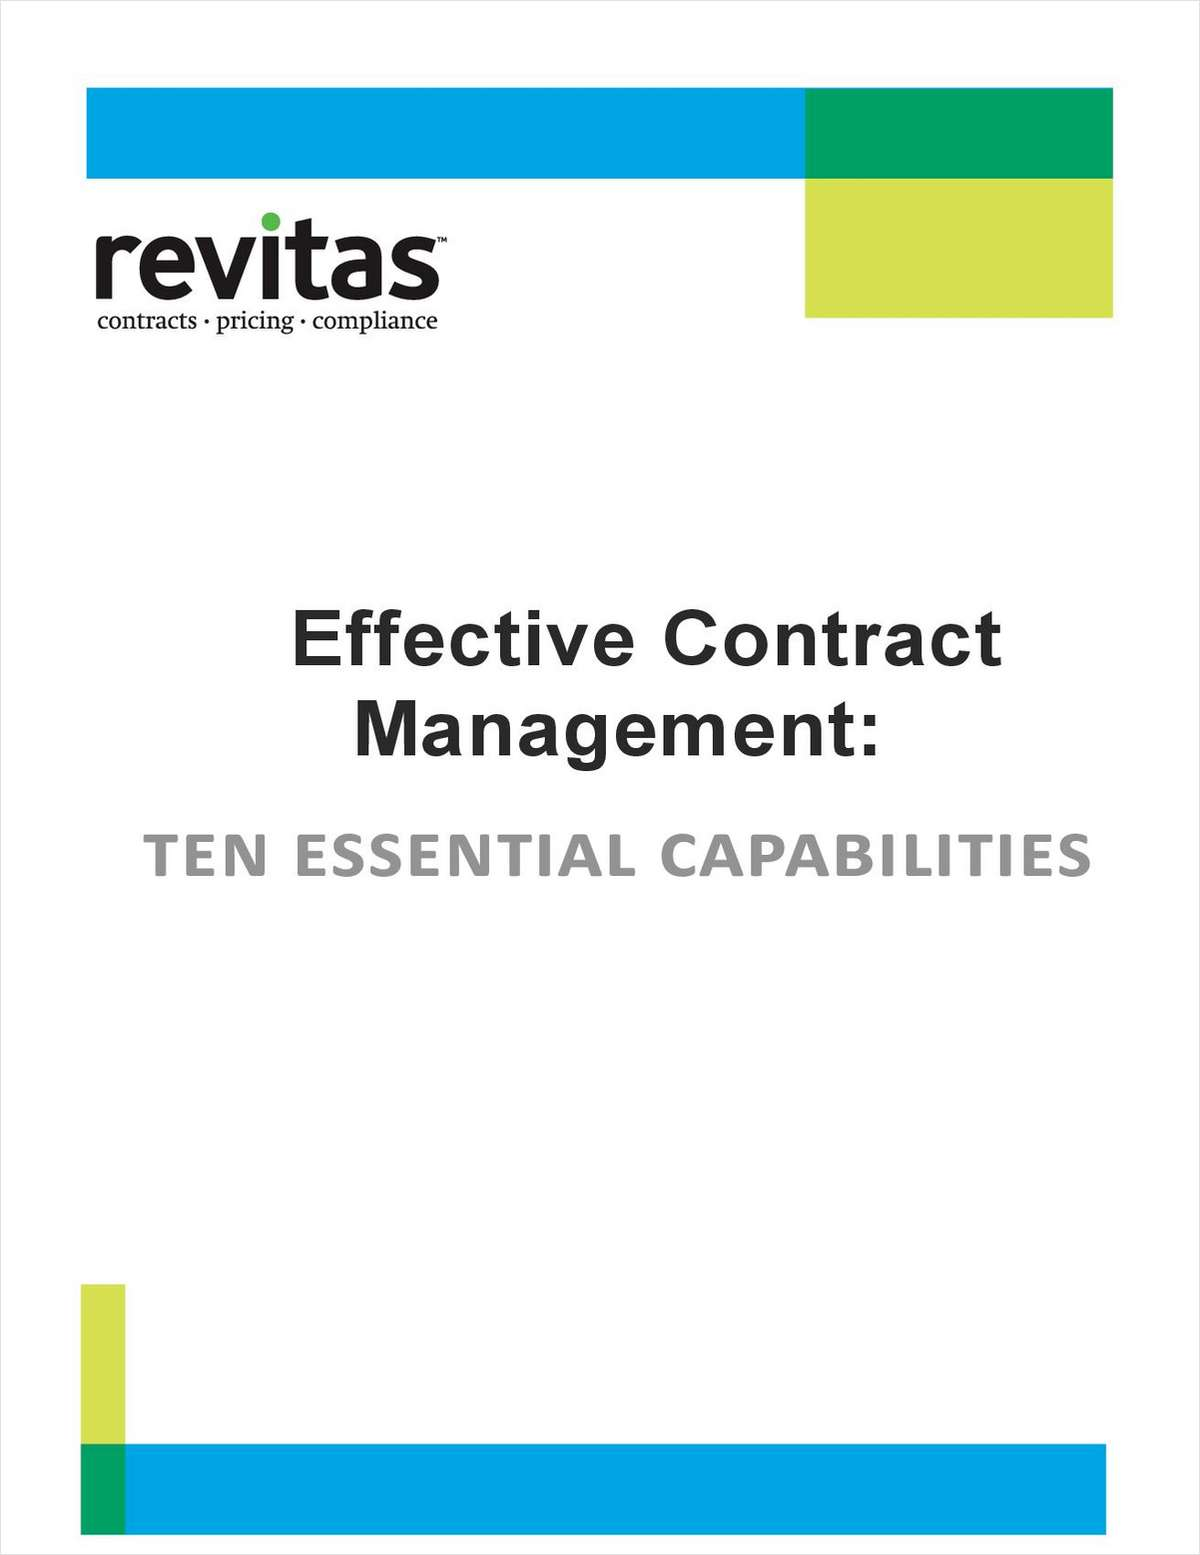 Ten Essential Capabilities for Effective Contract Management